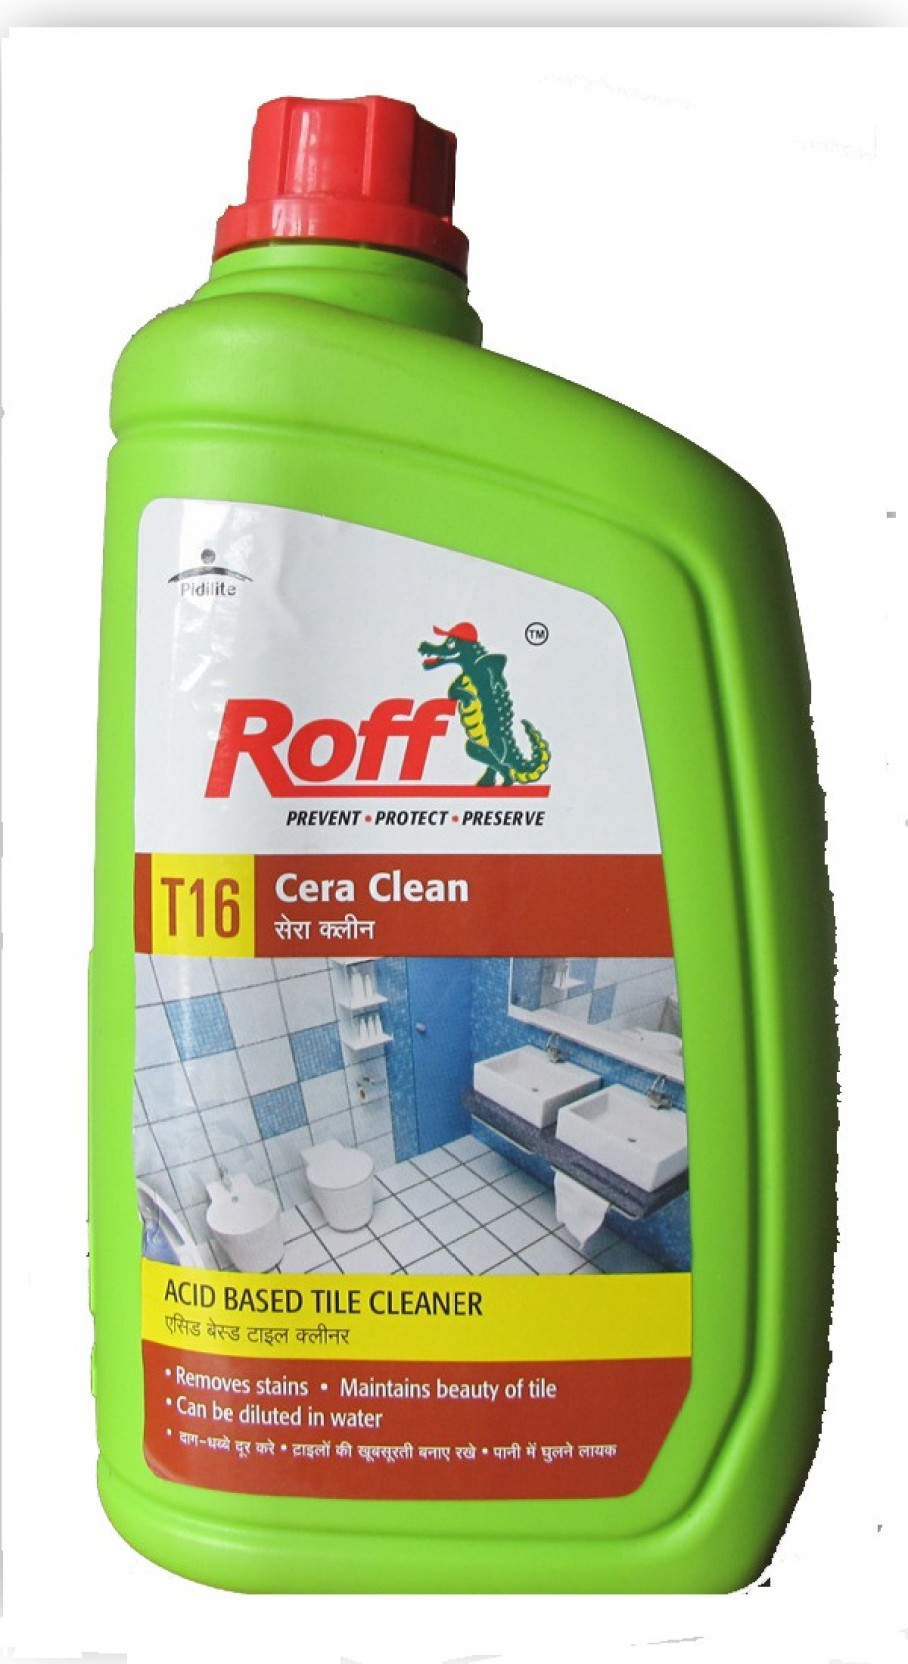 Roff cera clean regular floor cleaner price in india buy for Bathroom floor cleaning products